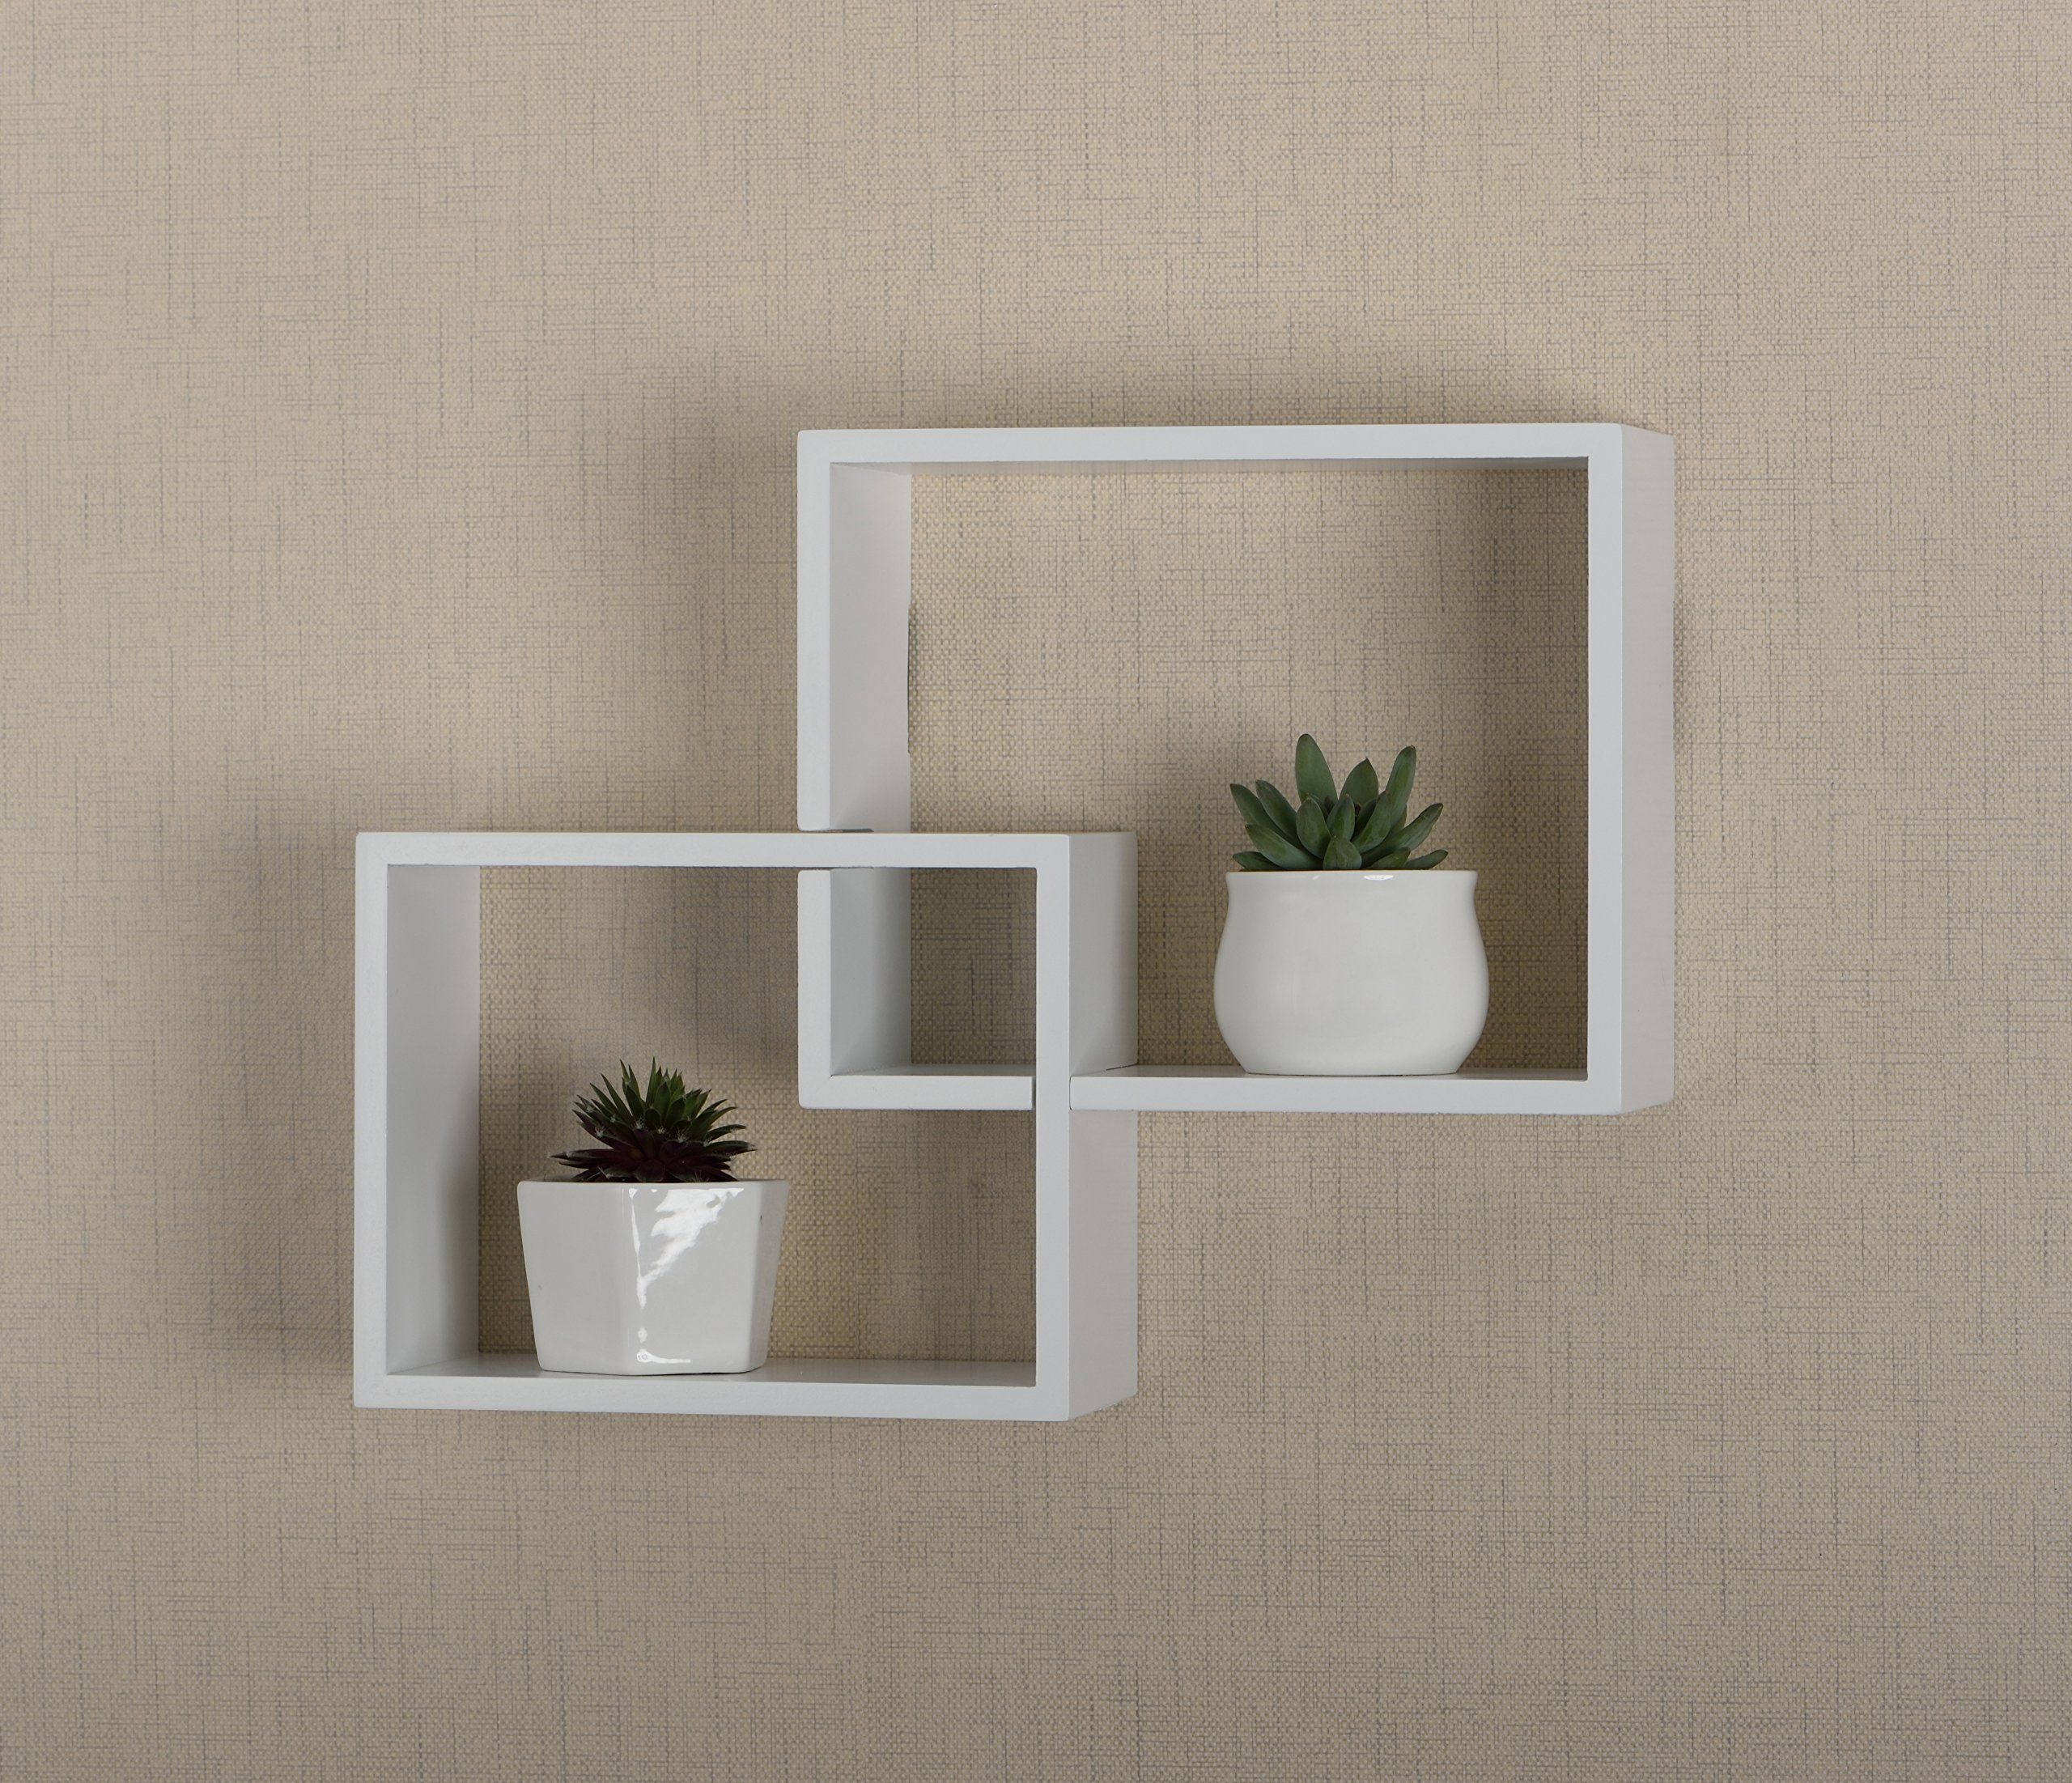 Vlight Interlocking Wall Cube Wood Shelving White See This